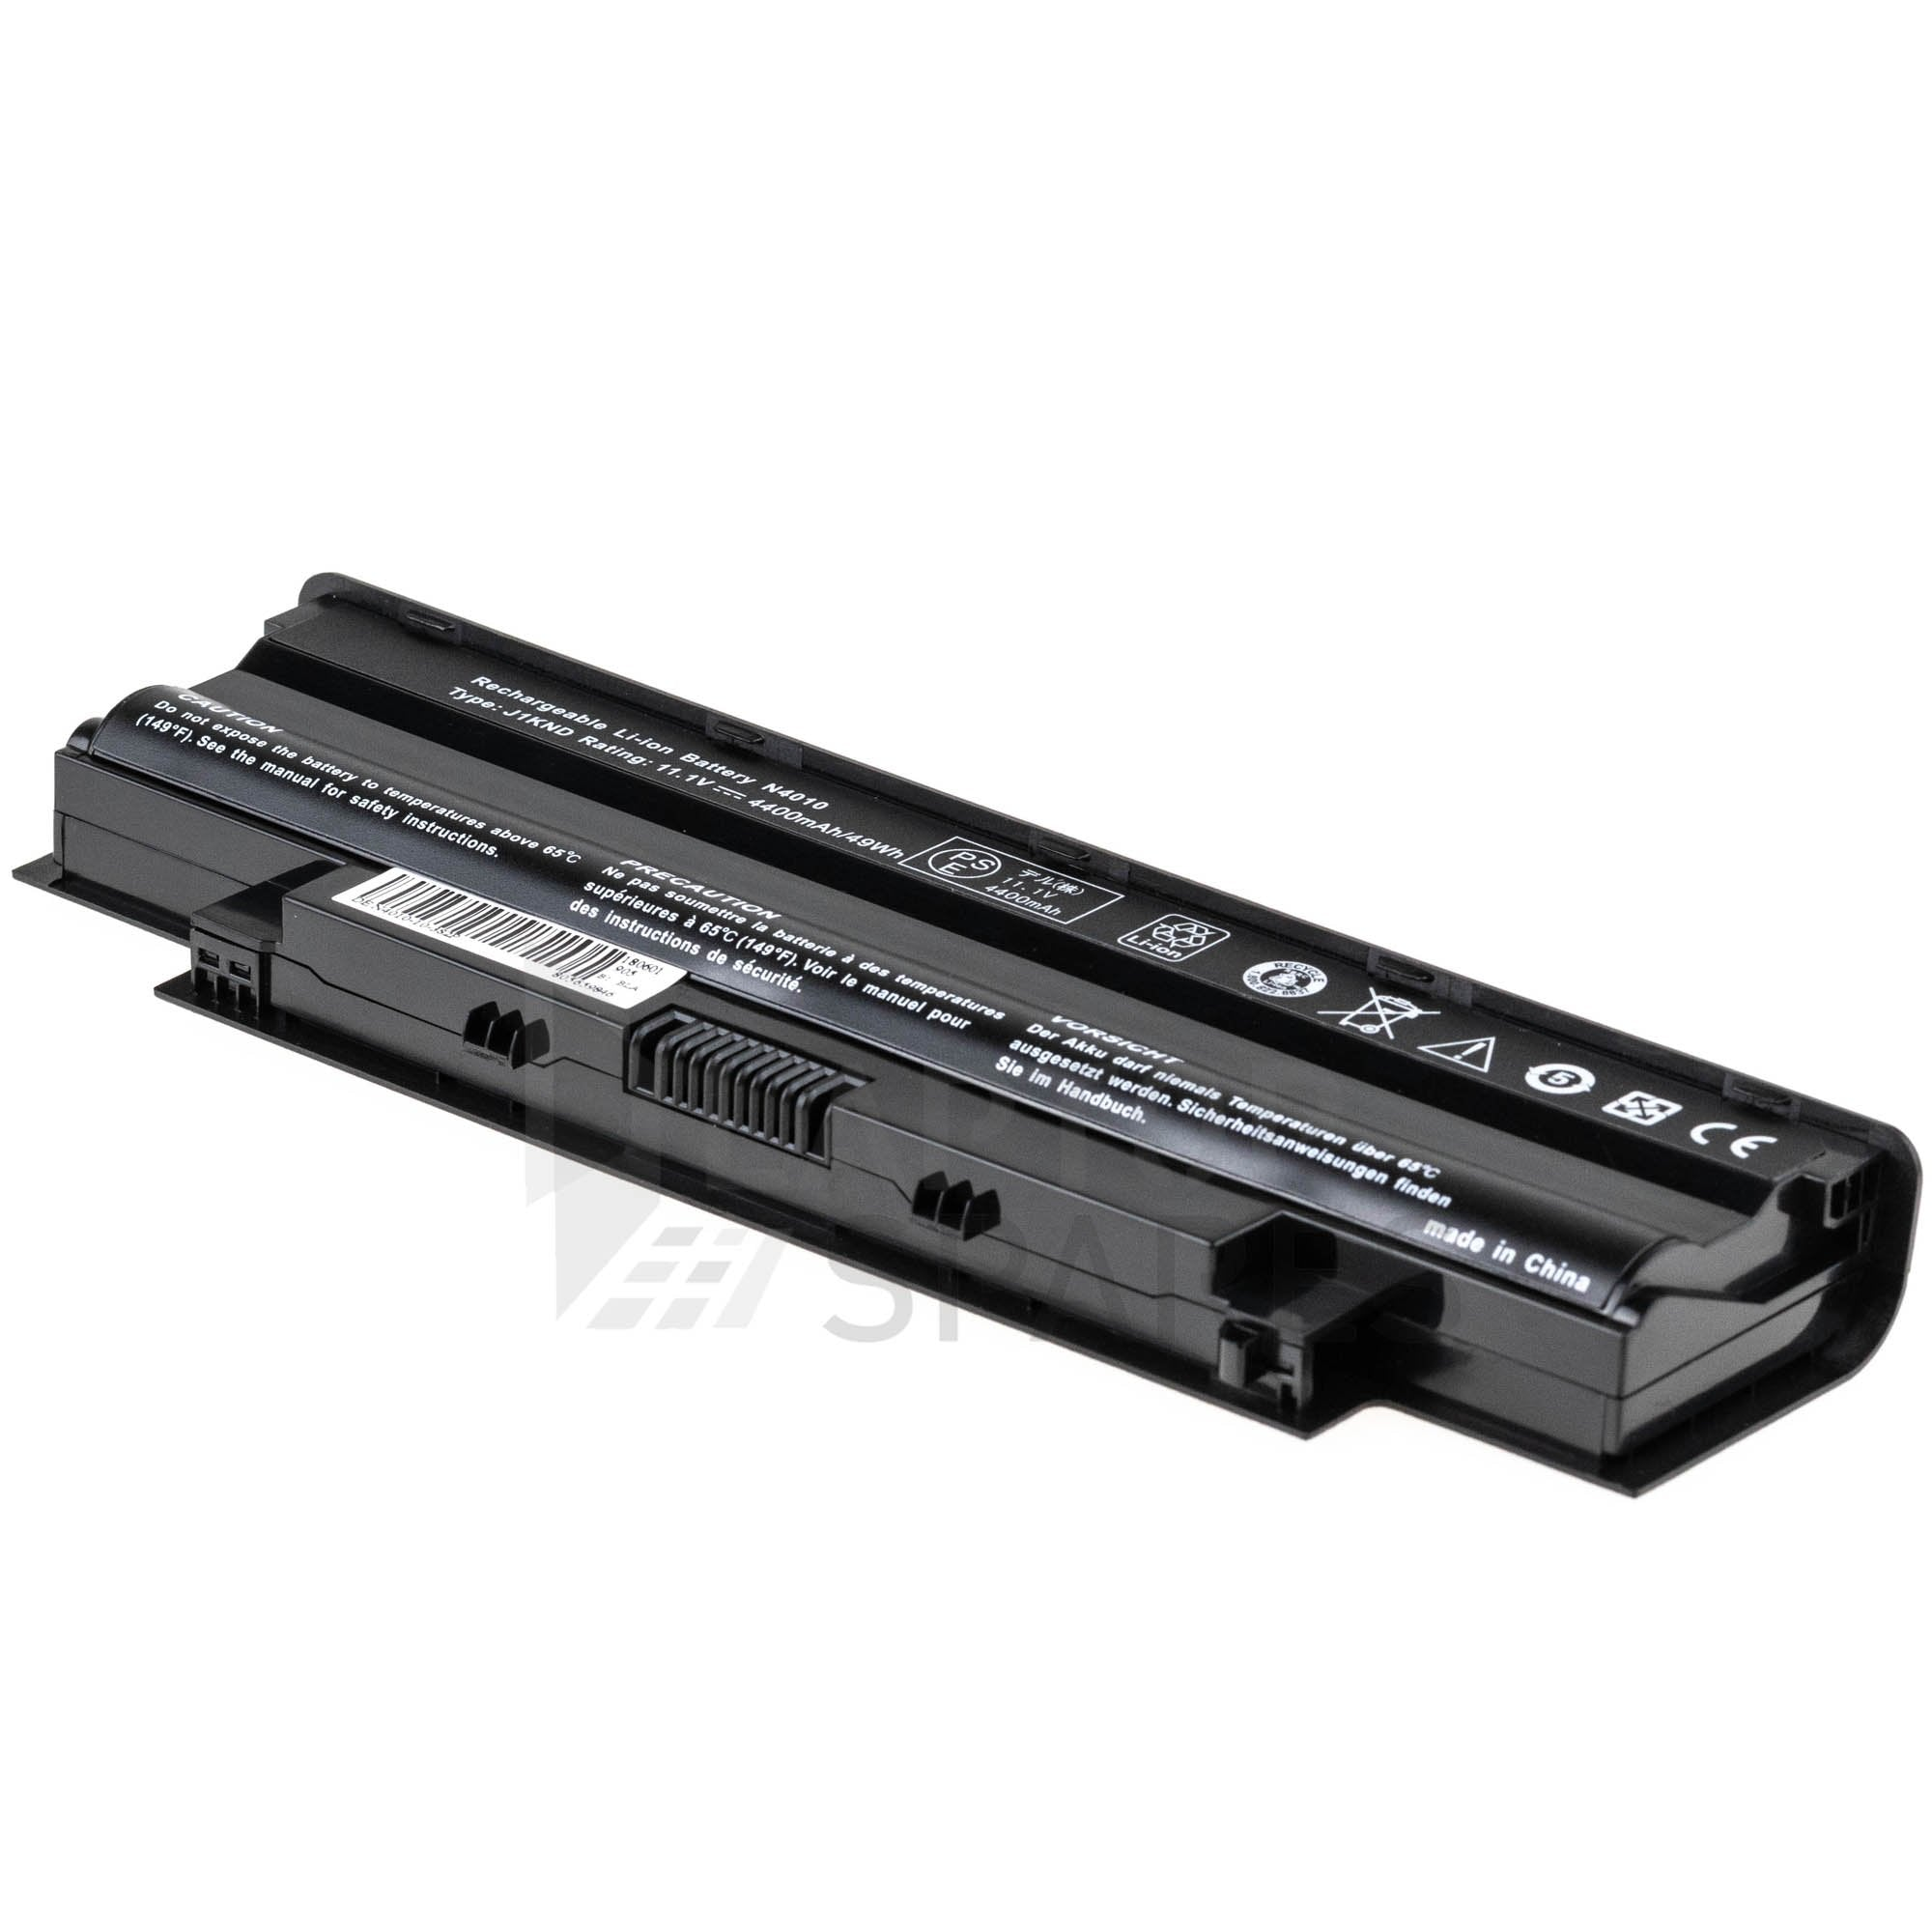 Dell Inspiron N4010D-248 4400mAh 6 Cell Battery